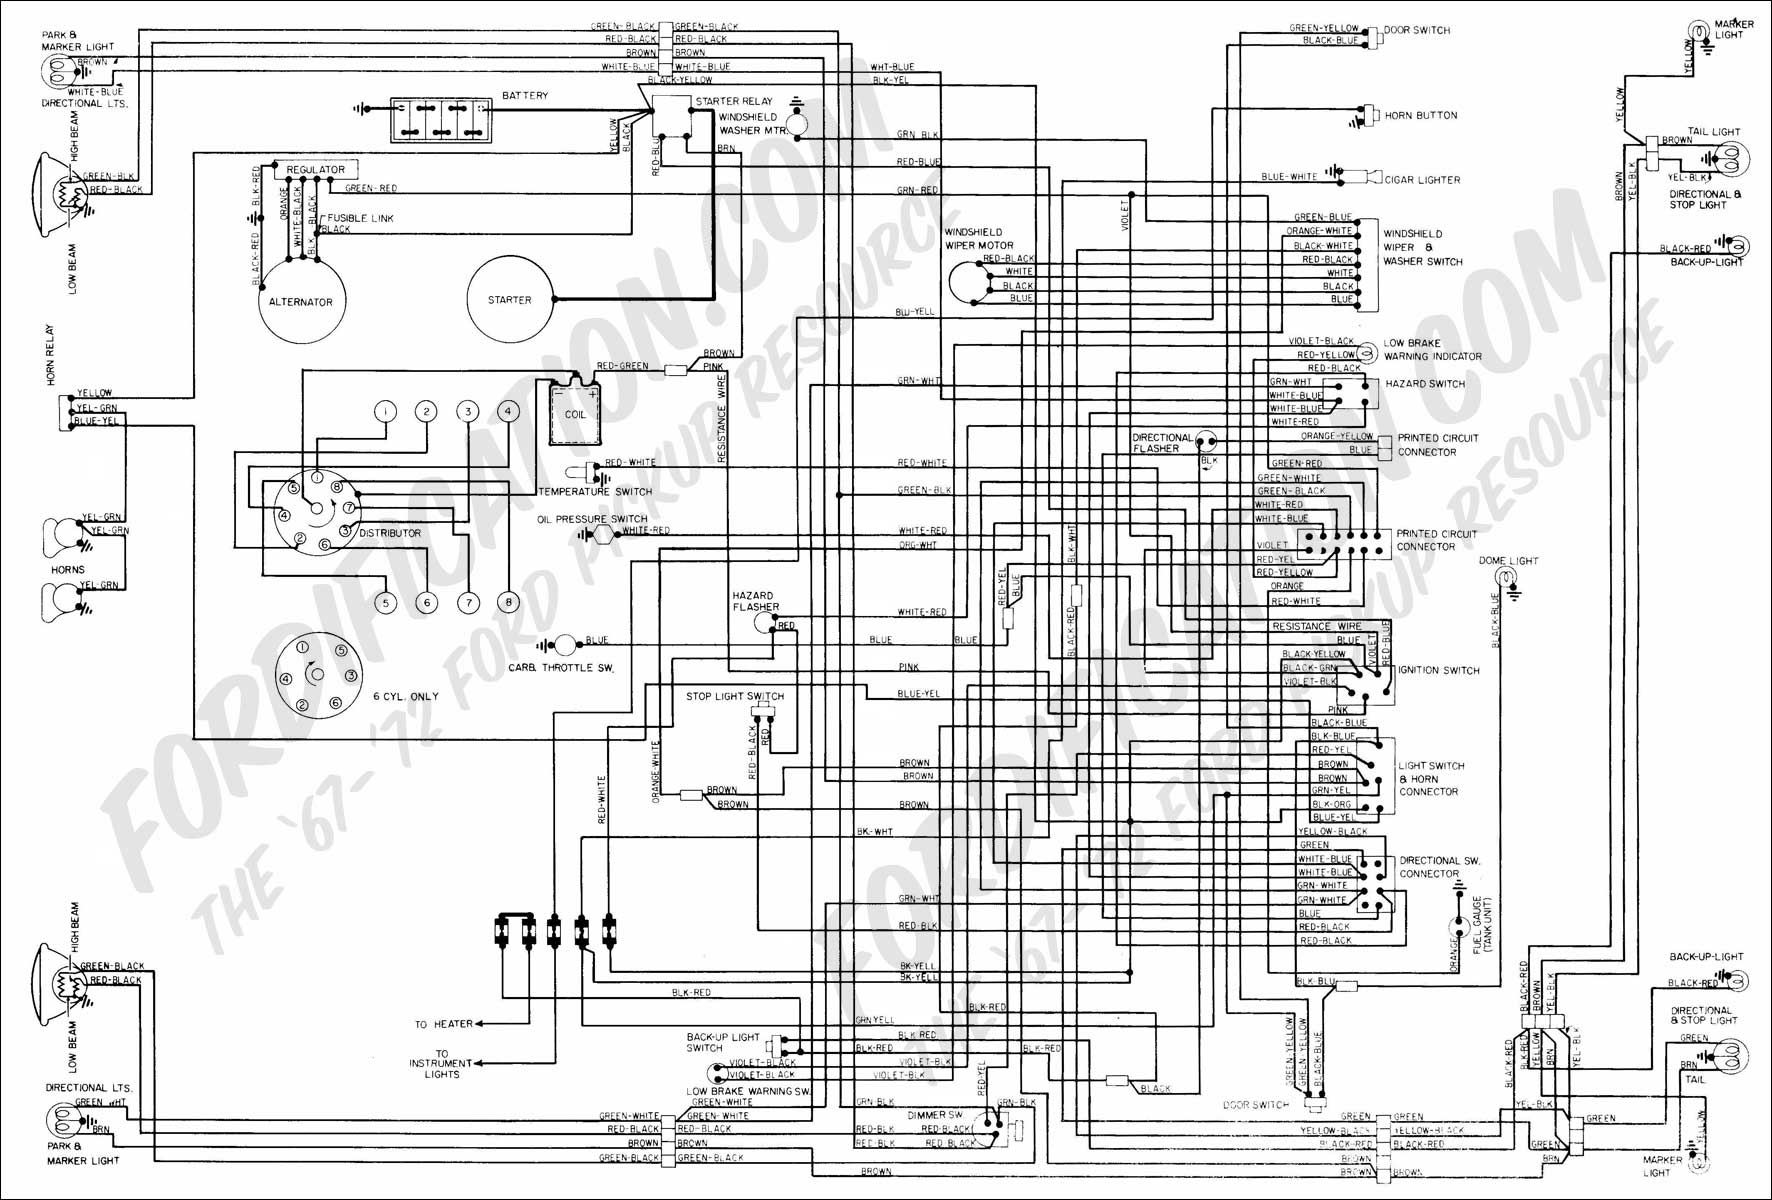 hight resolution of 1977 f150 wiring diagram wiring diagram blog 1977 ford f150 starter solenoid wiring diagram 1977 f150 wiring diagram